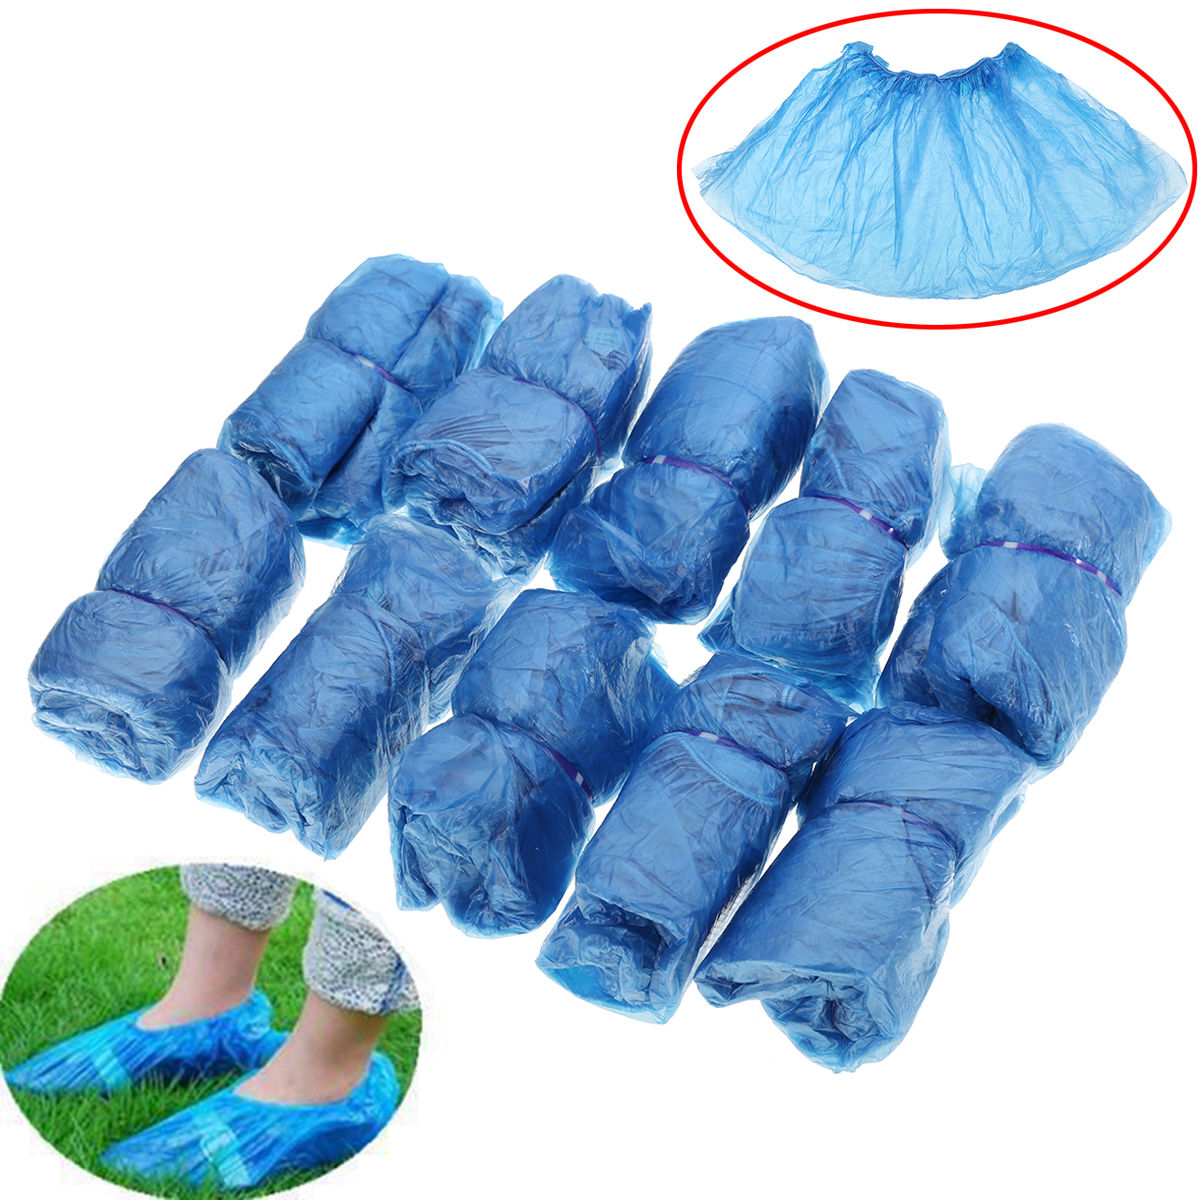 100Pcs Disposable Plastic Shoe Covers Overshoes Waterproof Boot Covers EA